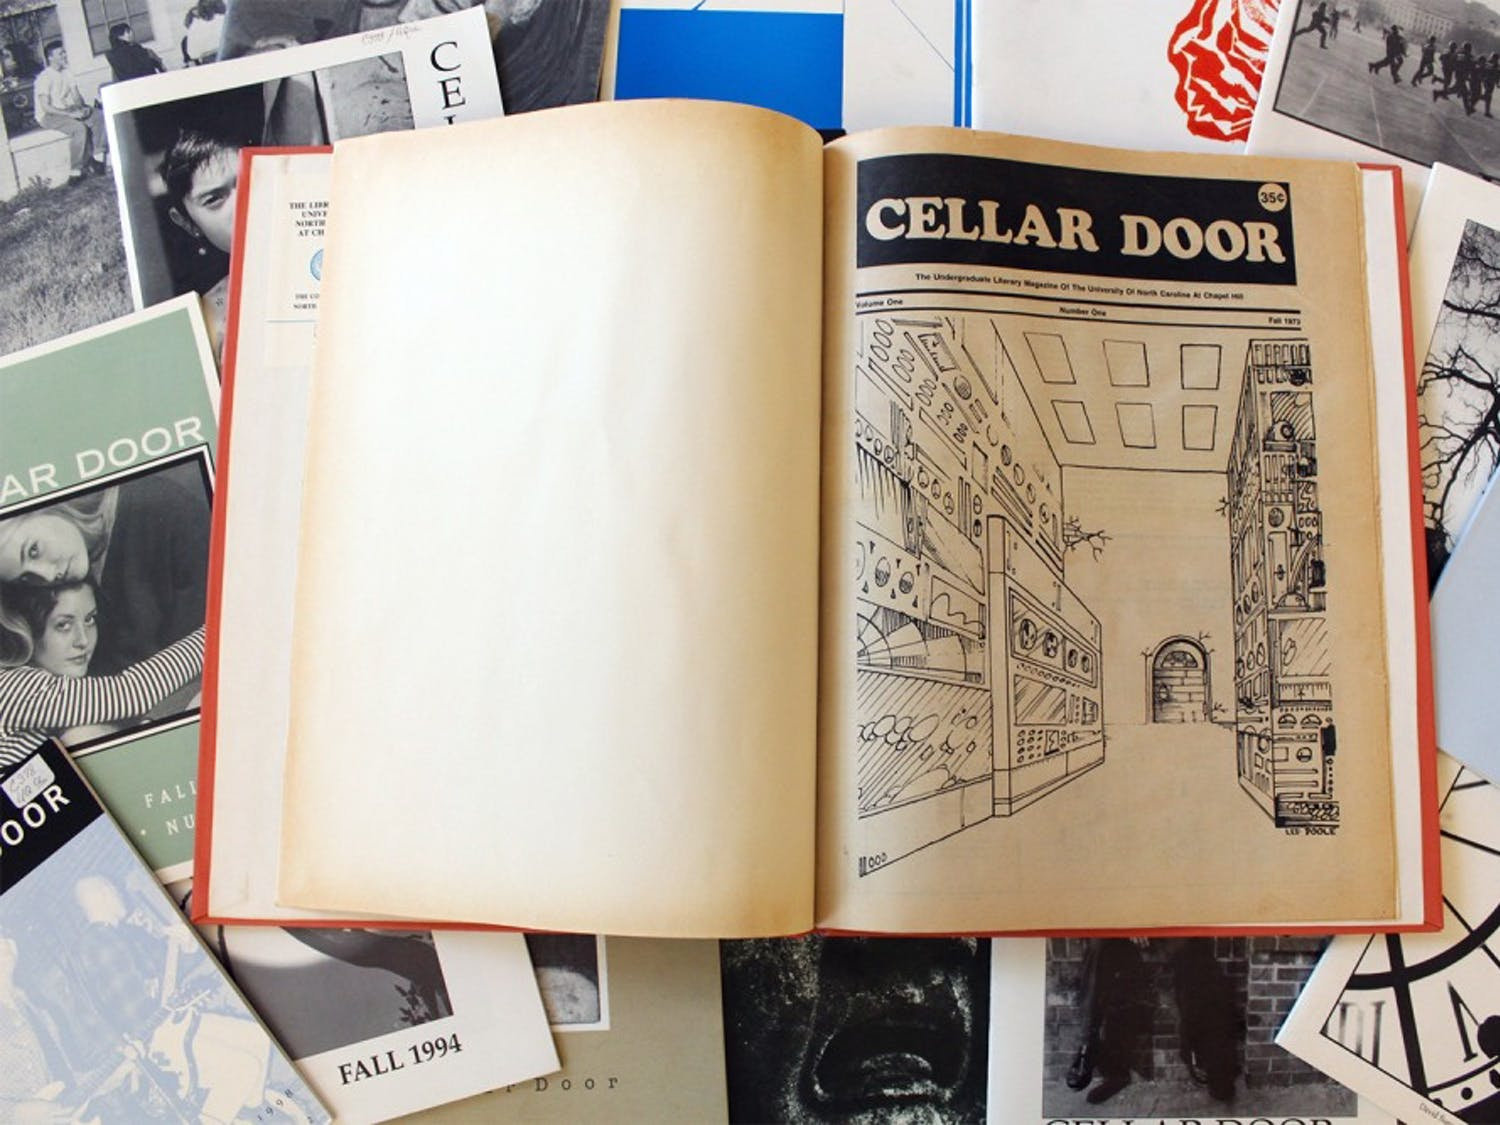 Cellar Door has been publishing since the mid 1970s.  Feb. 9 marked the final submissions for the literary and art magazine.